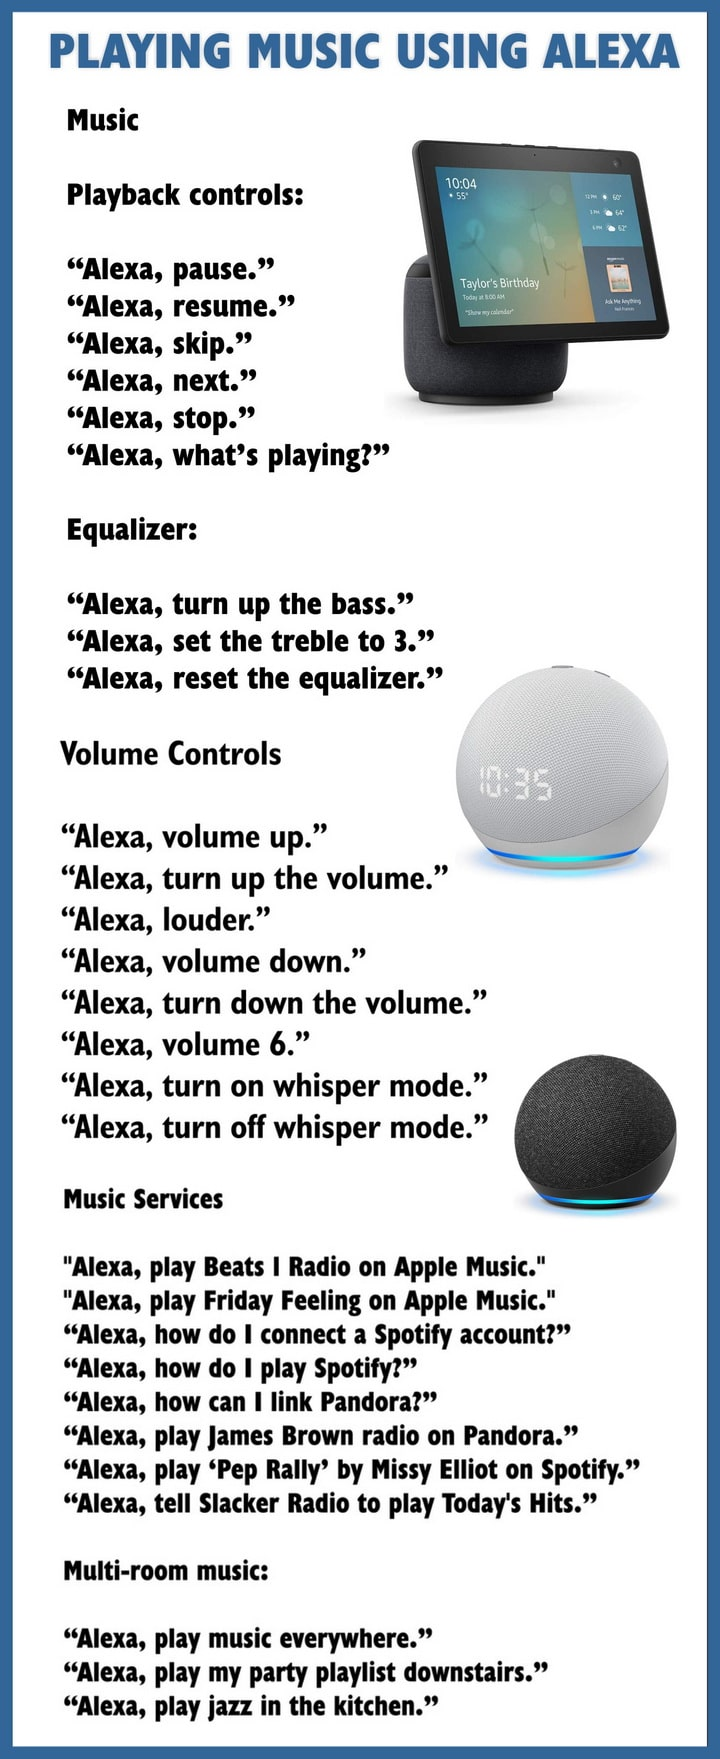 Amazon Alexa - How to play music and control volume